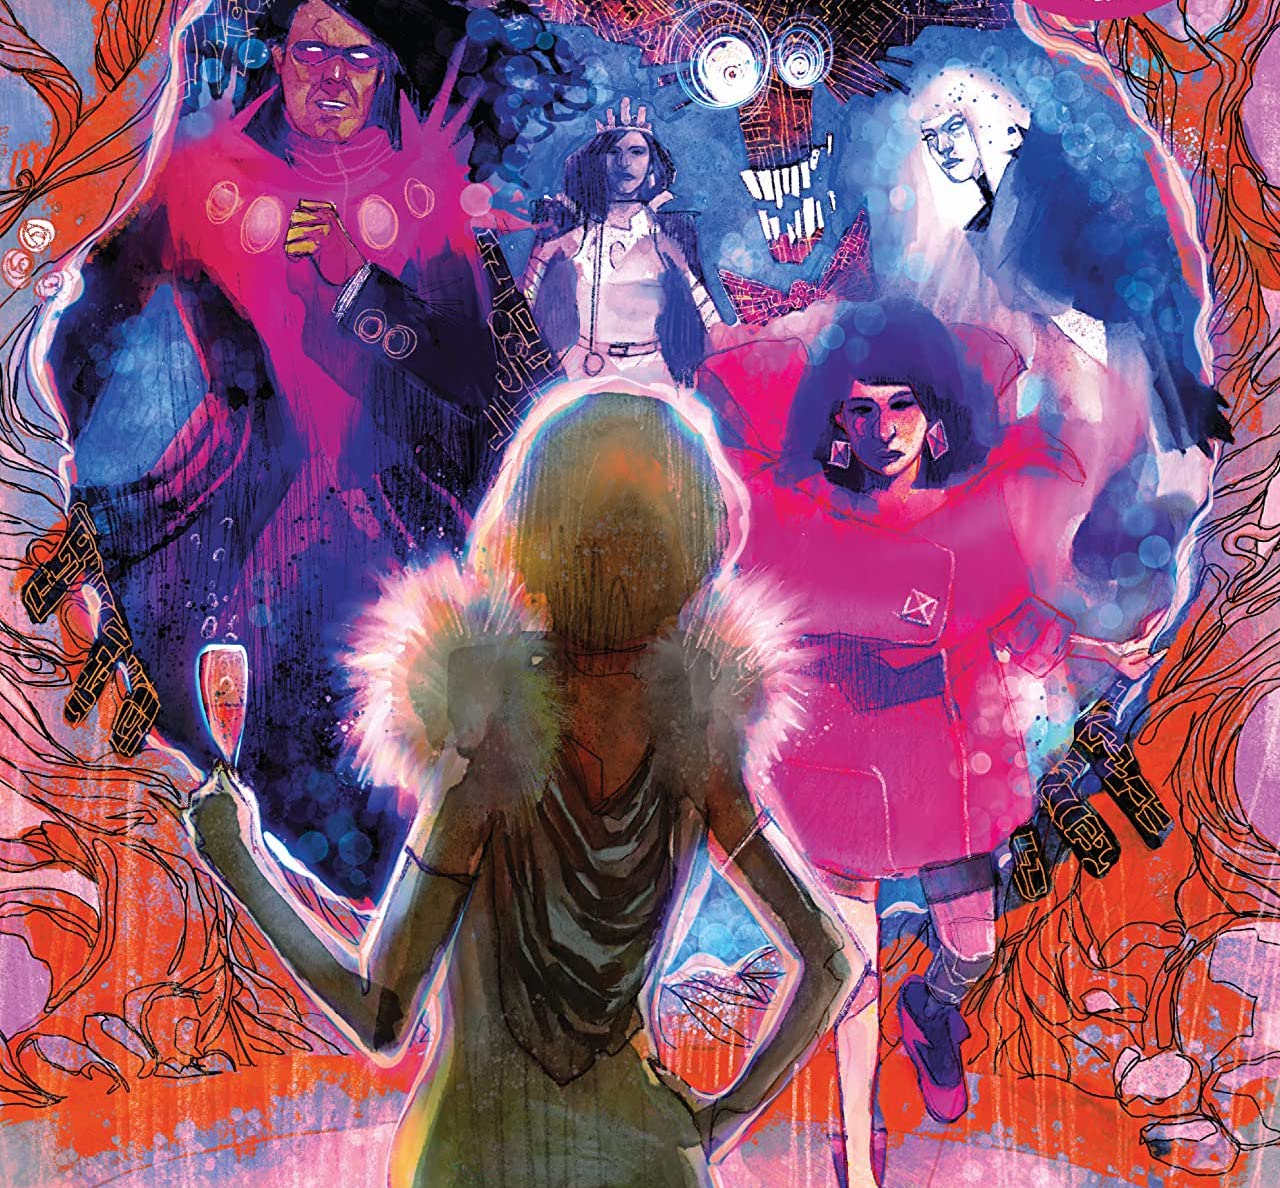 'New Mutants' #19 grabs some drinks and snacks at the Hellfire Gala